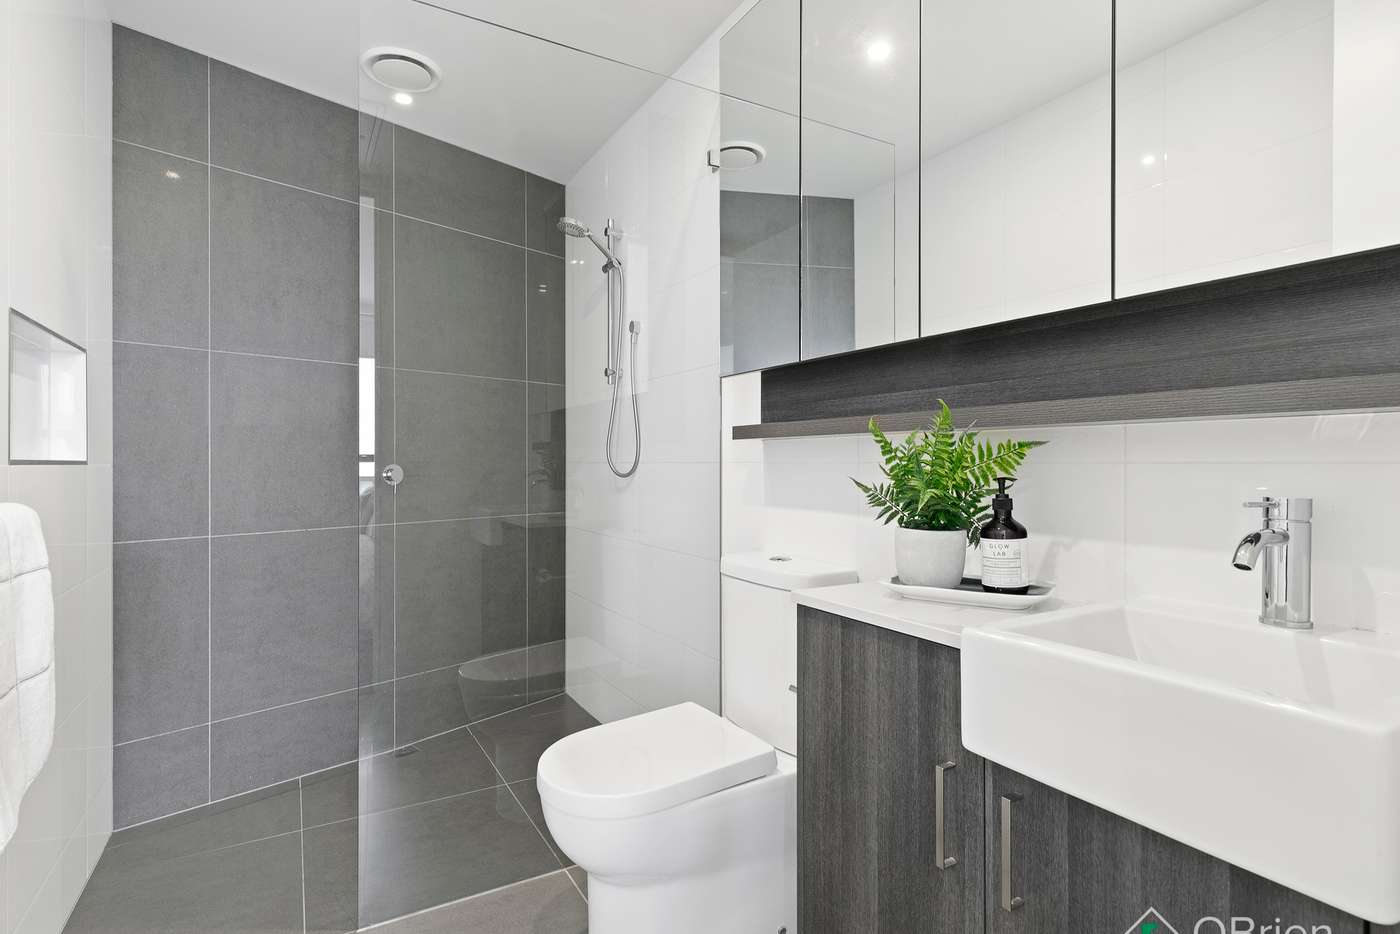 Fifth view of Homely apartment listing, 604/222 Bay Road, Sandringham VIC 3191